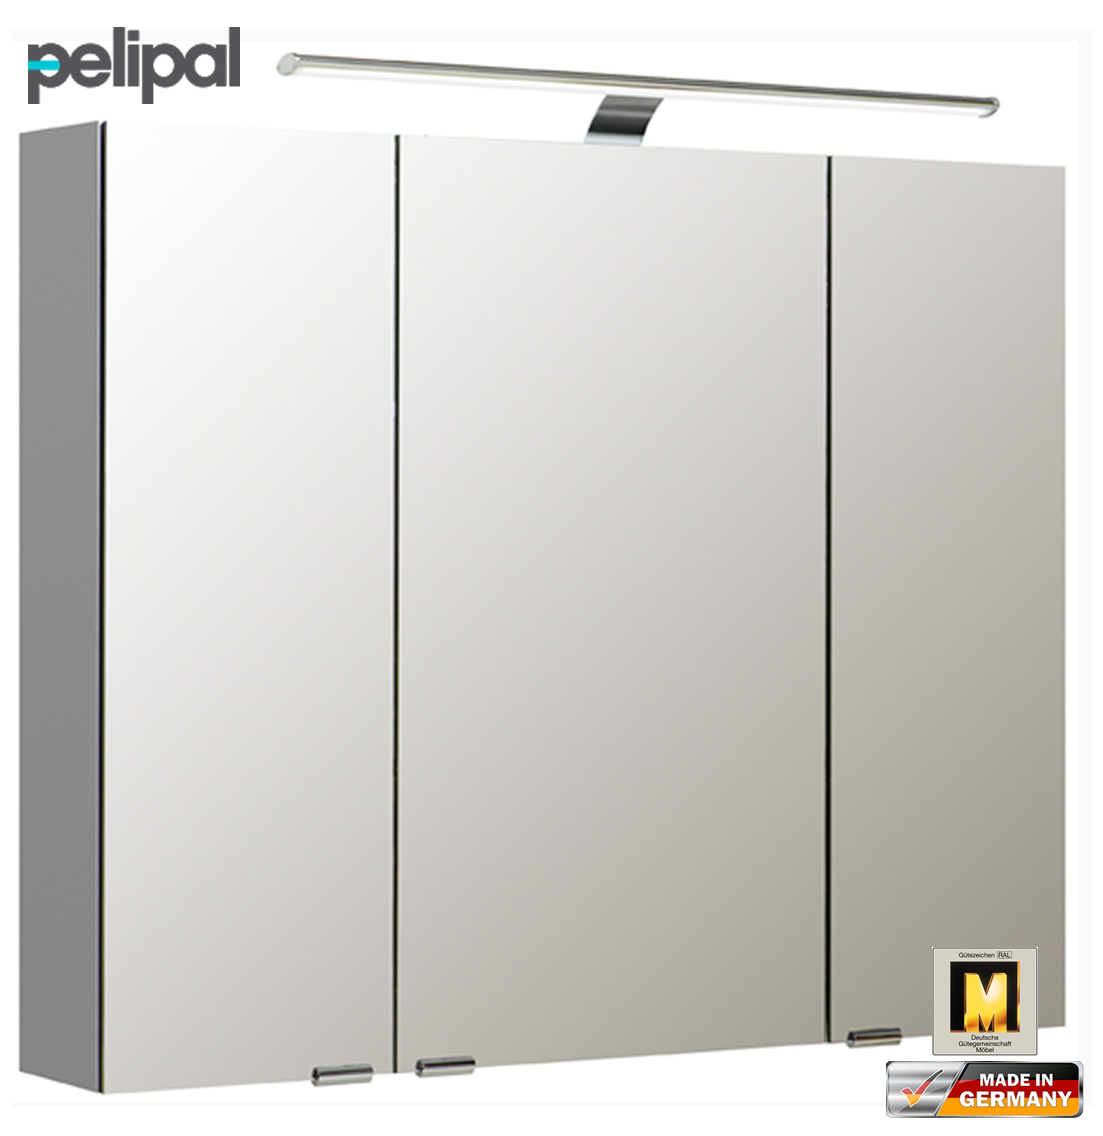 pelipal neutraler spiegelschrank 90 cm mit led. Black Bedroom Furniture Sets. Home Design Ideas